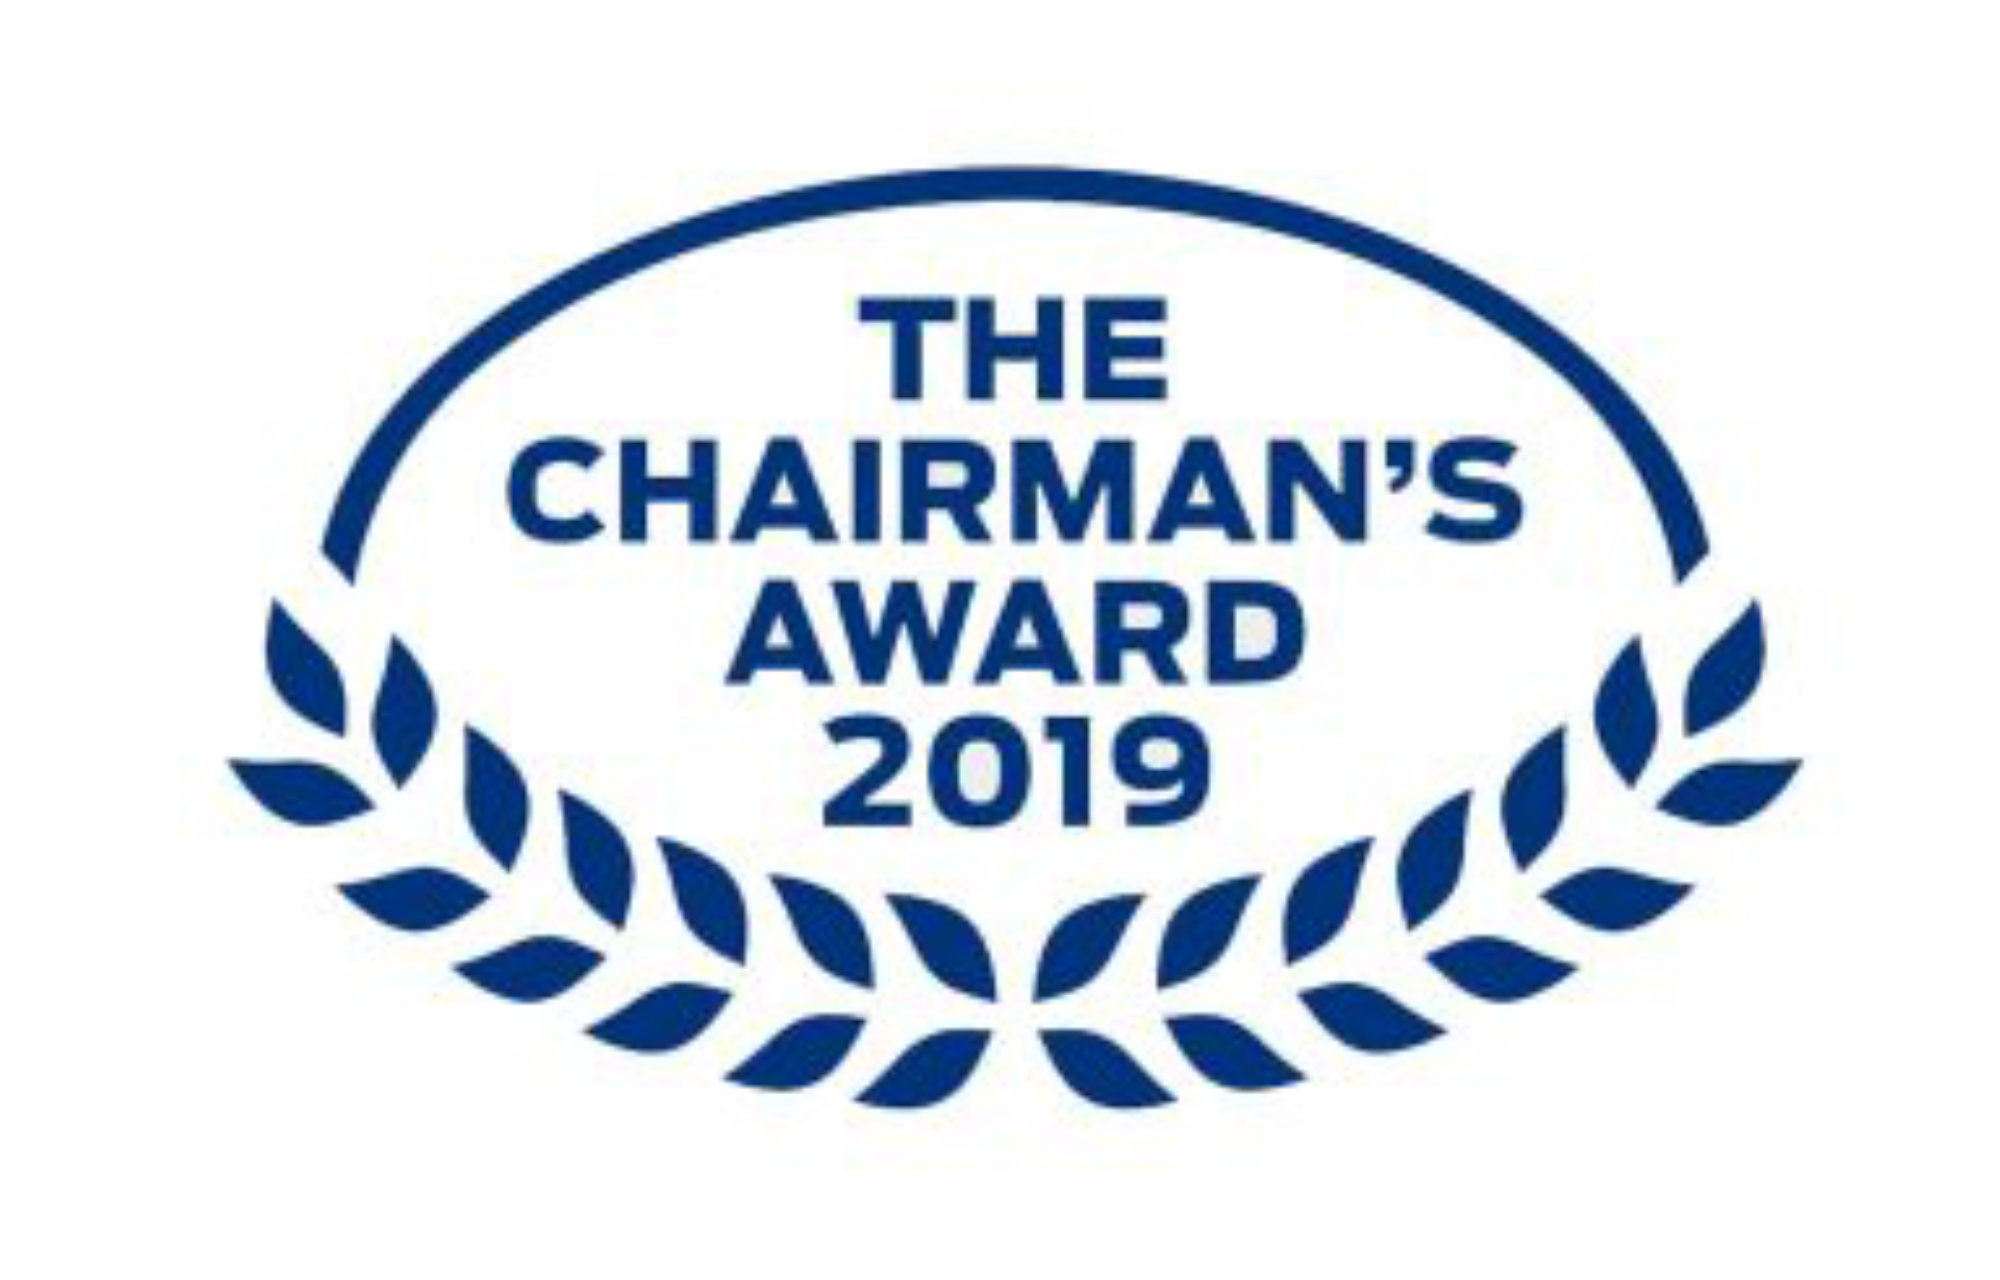 The Chairman's Award